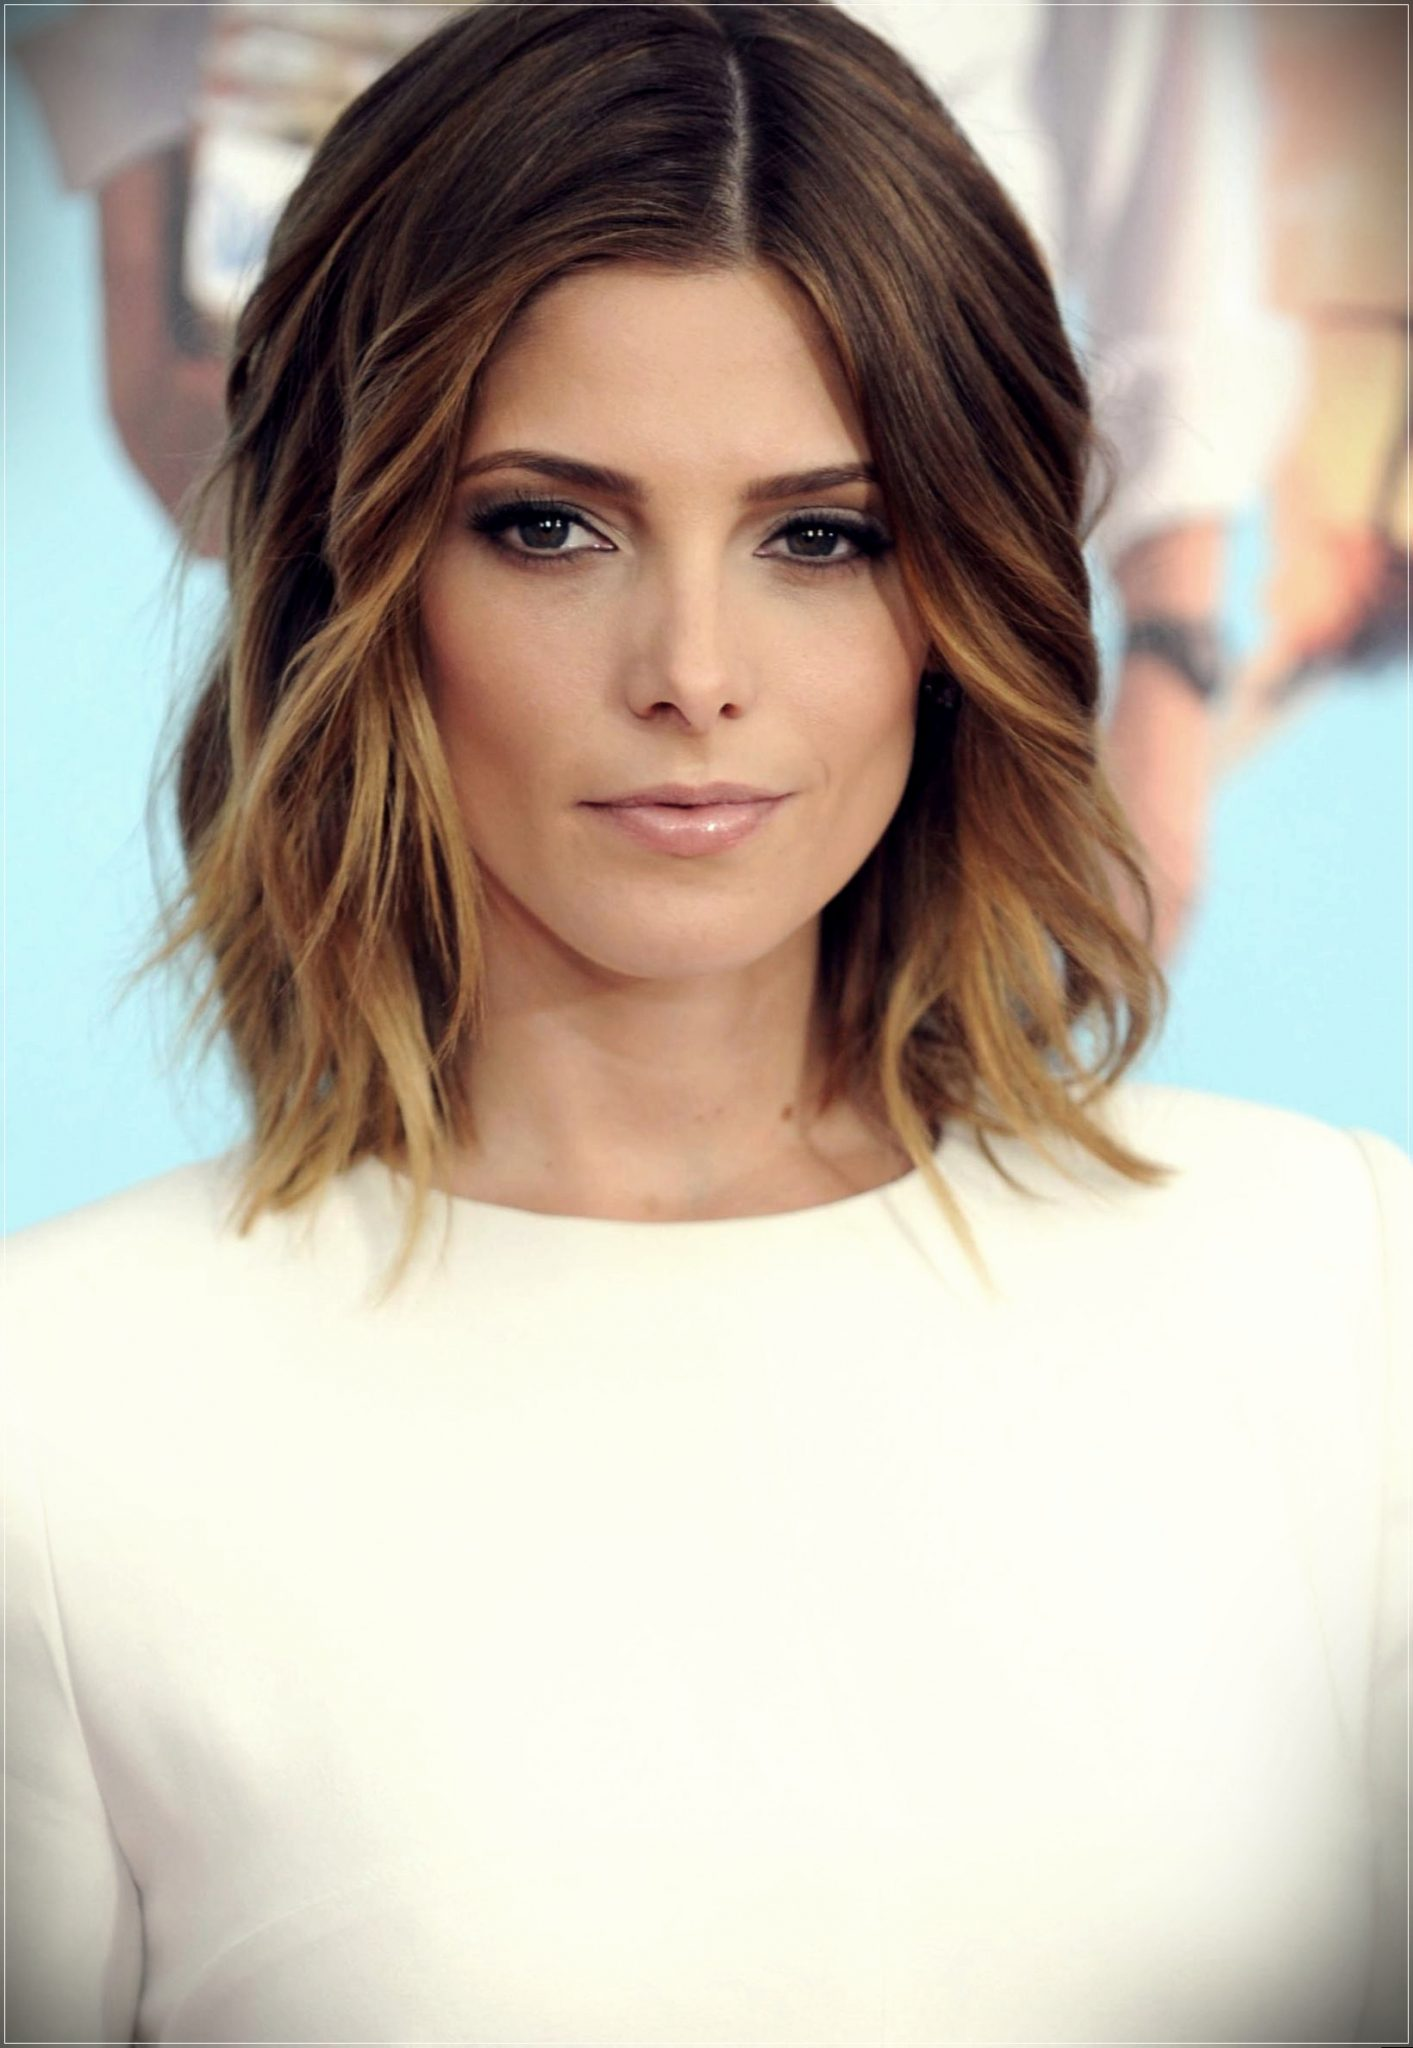 ombre hair ideas for short hair 7 - Some useful ombre hair ideas for short hair